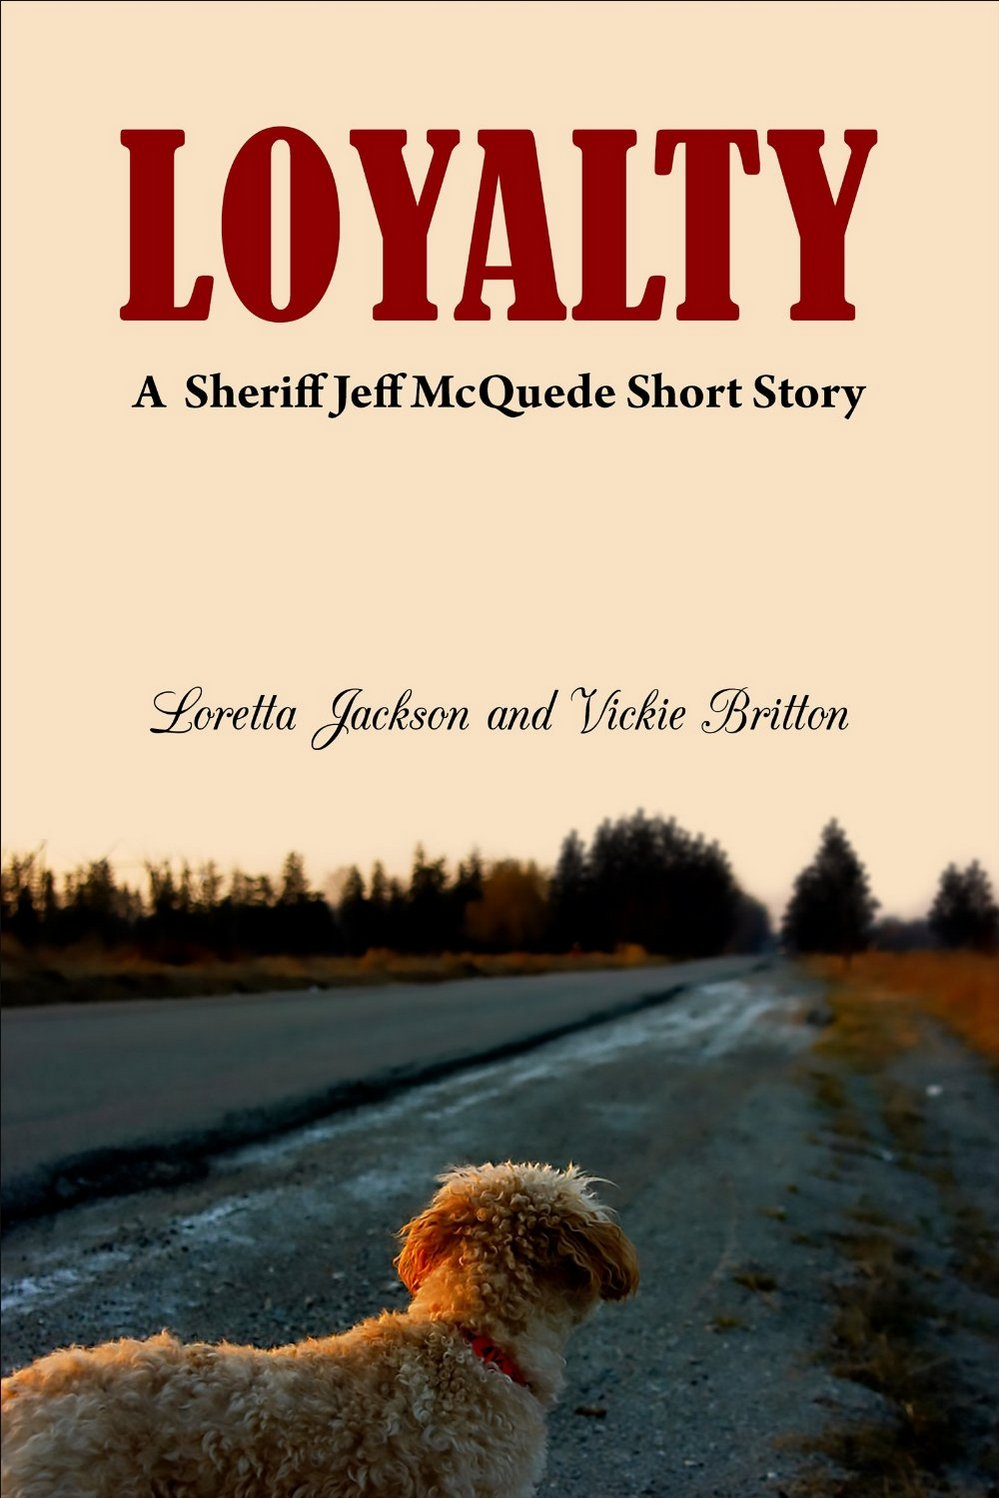 READ LOYALTY A Jeff McQuede short story 99c on KINDLE!